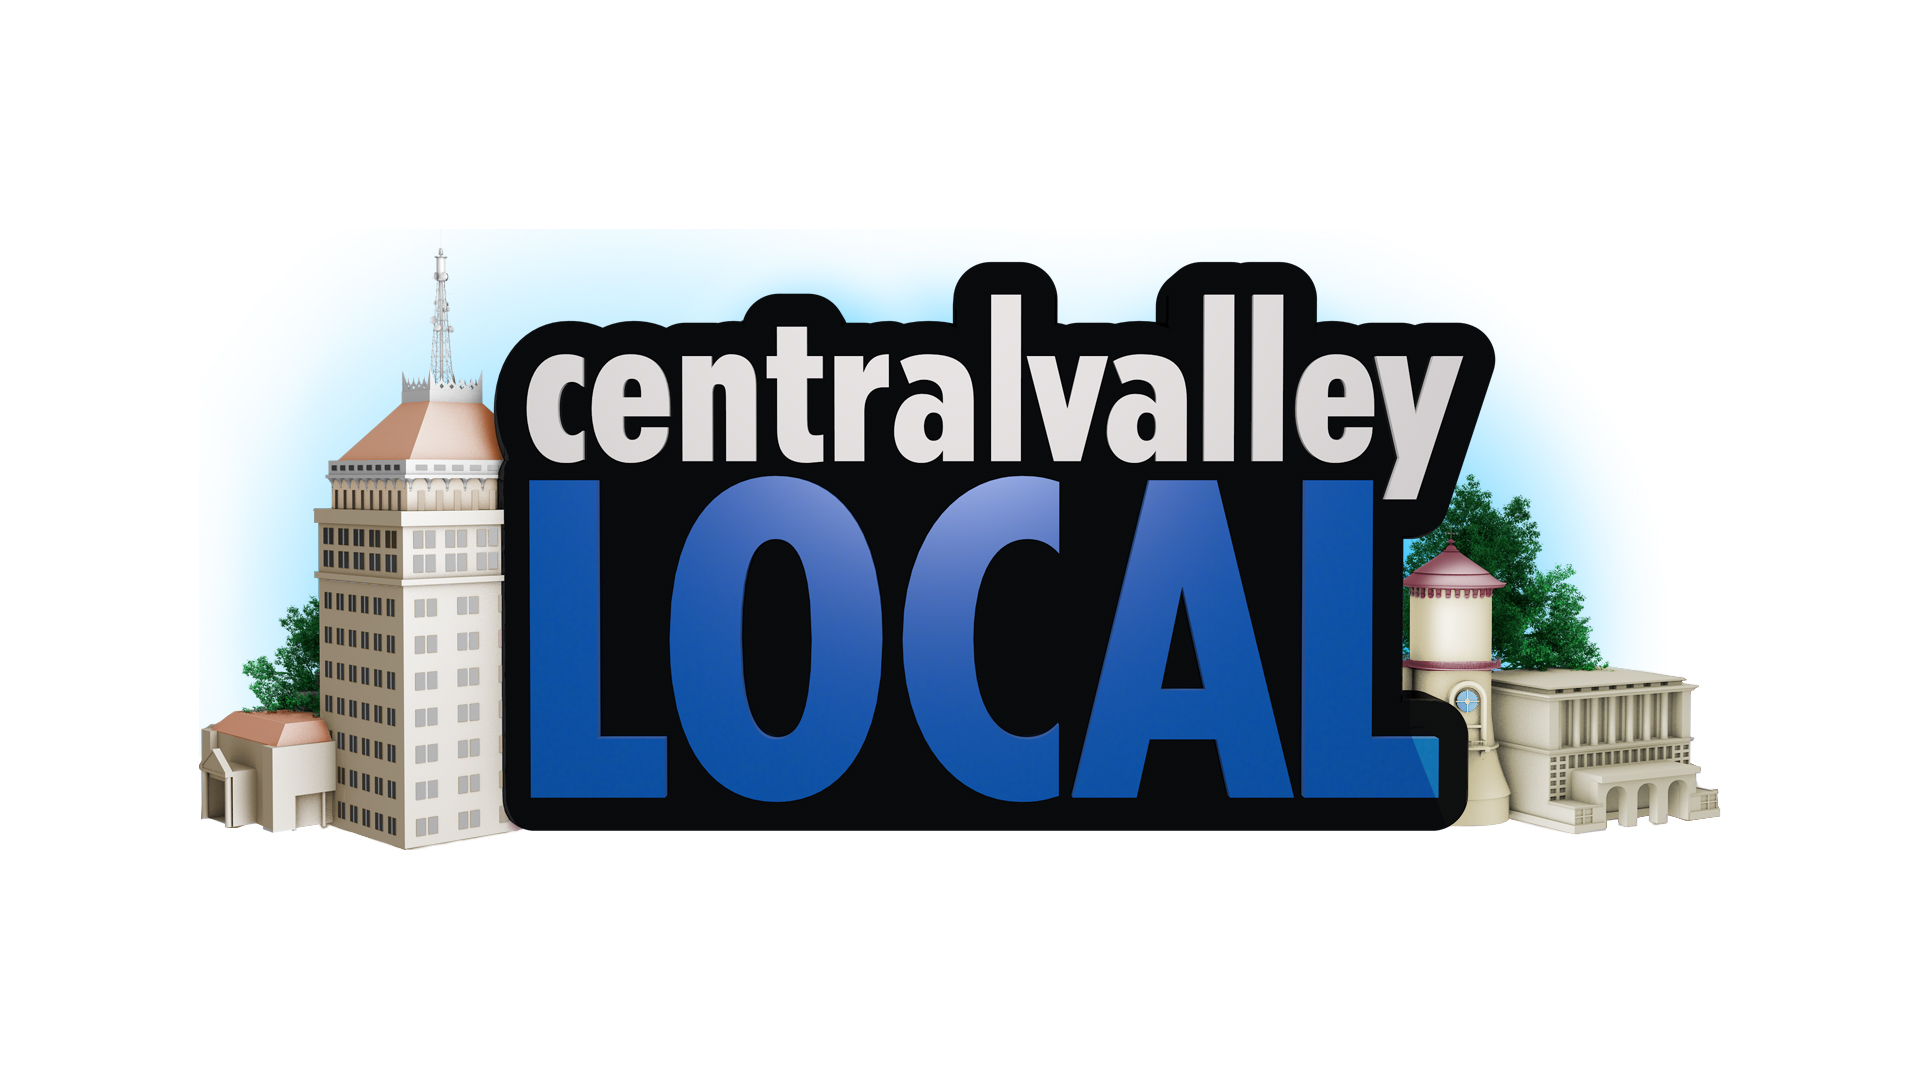 central-valley-local_1521674280077.jpg